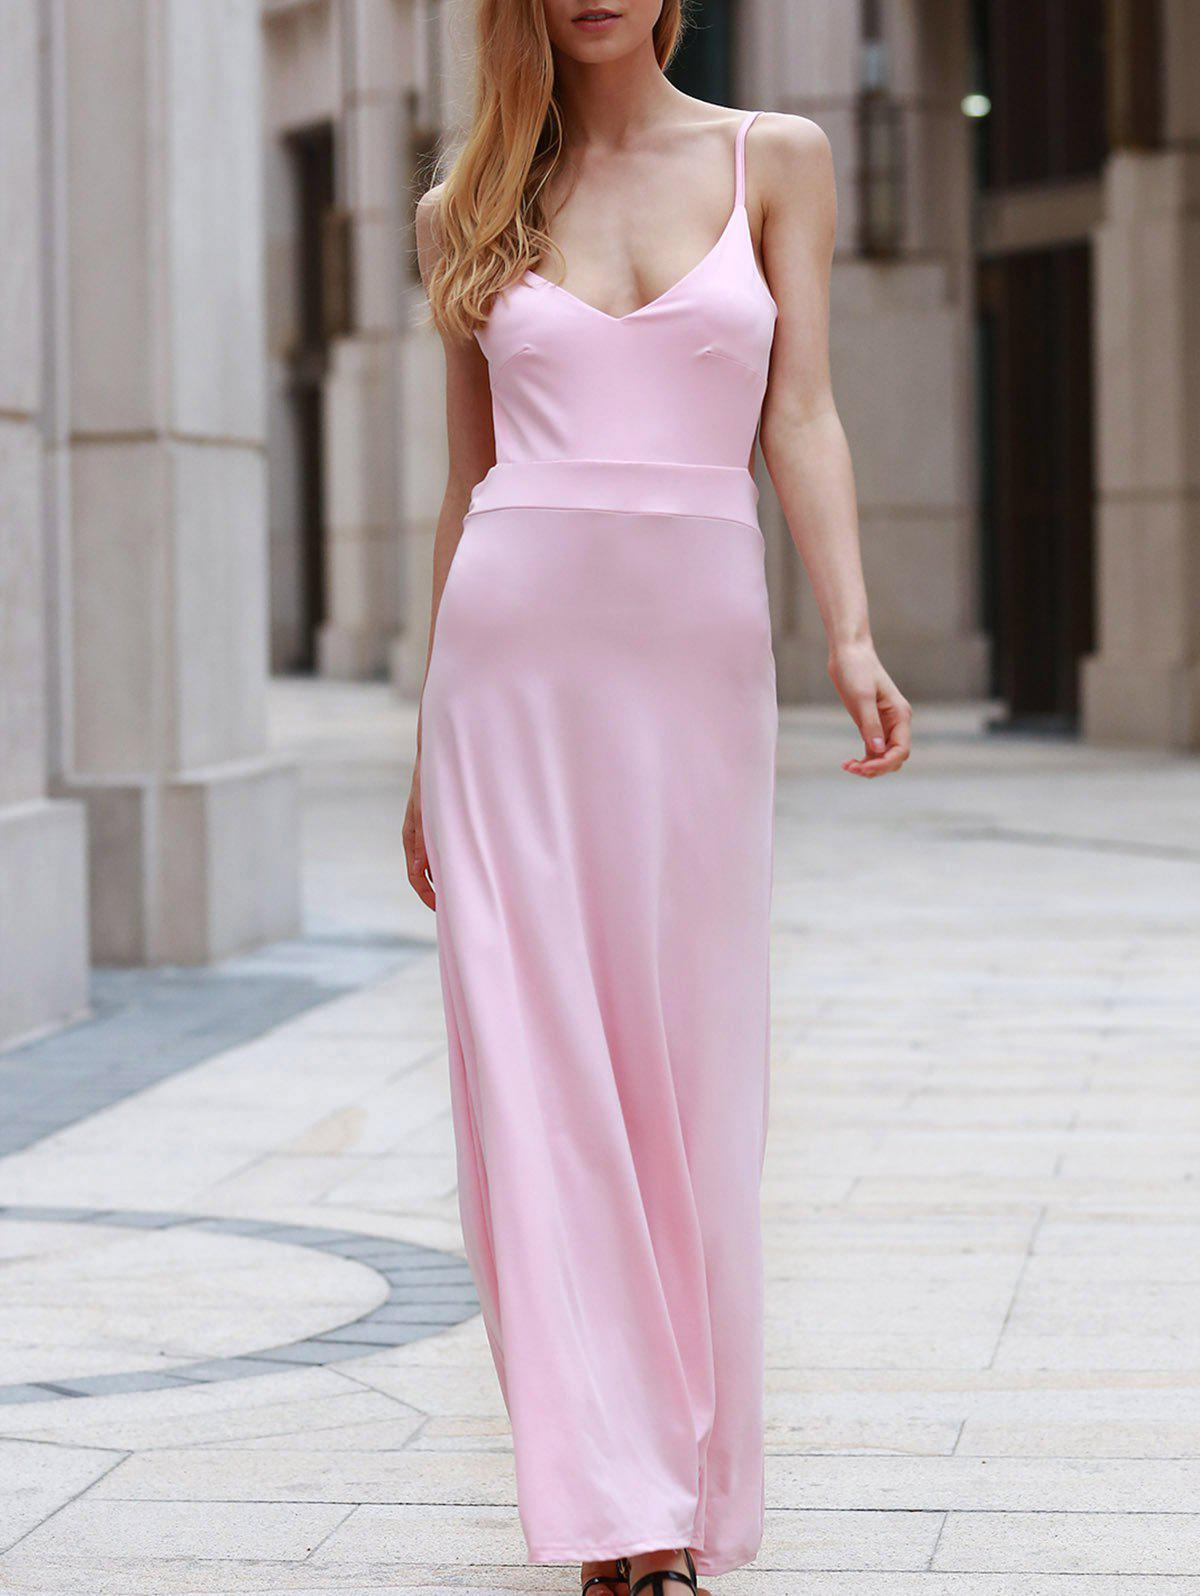 Sexy Spaghetti Strap Sleeveless Backless Solid Color Women's Maxi Dress - PINK S